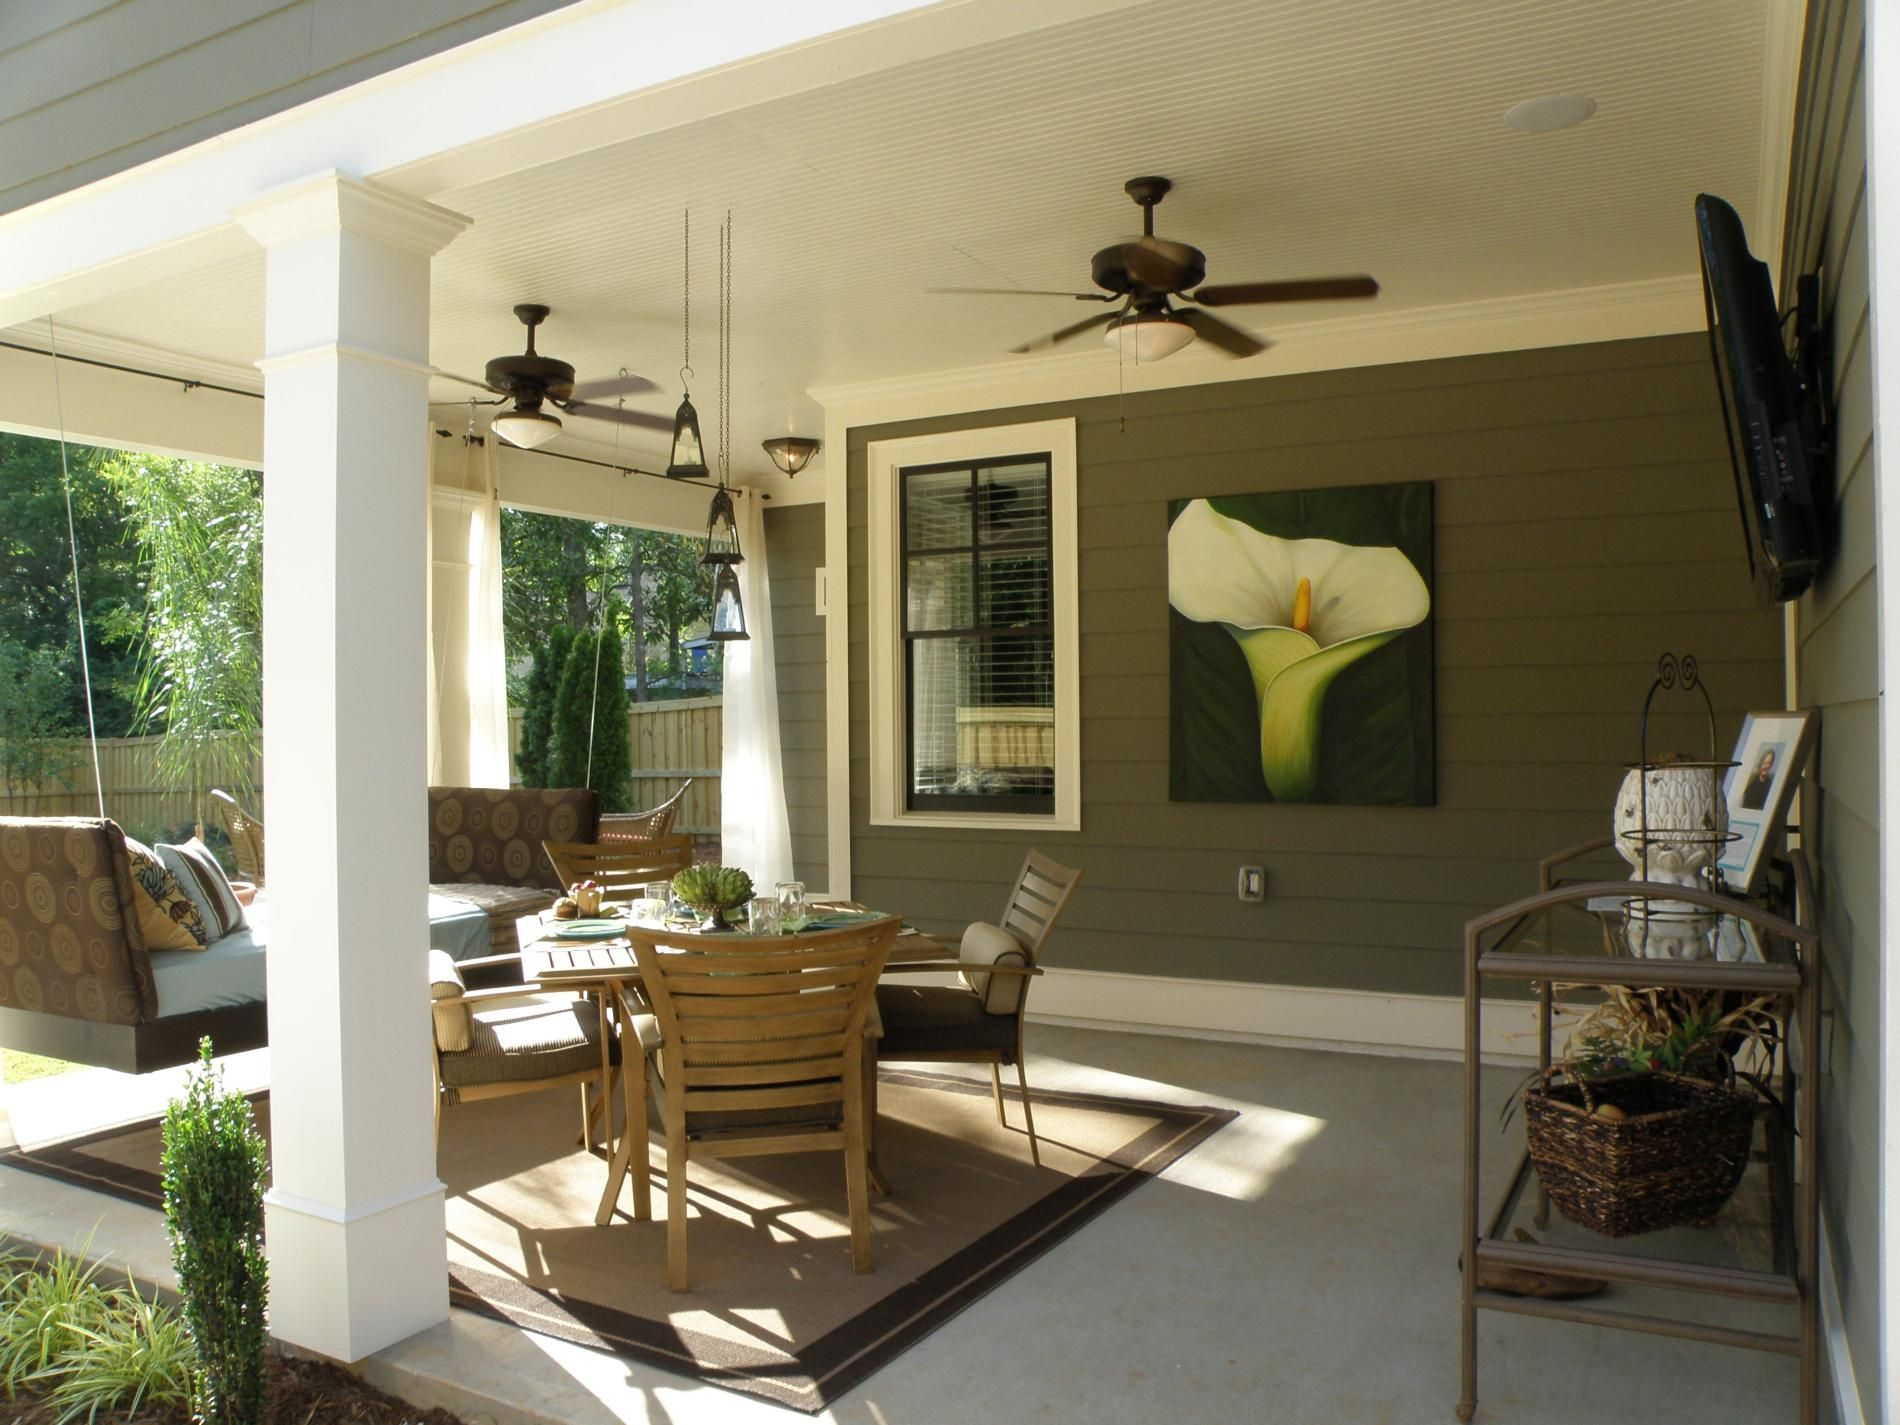 Polished Ceiling Fan Lights Over Patio Set Adirondack Design With Grey  Outdoor Wall Painted As Decorate Modern Covered Patio Inside Furnishing  DesignsBack patio column  Lisa Hatch   Designer Show House   Athens  . Outdoor Covered Patio Lighting Ideas. Home Design Ideas